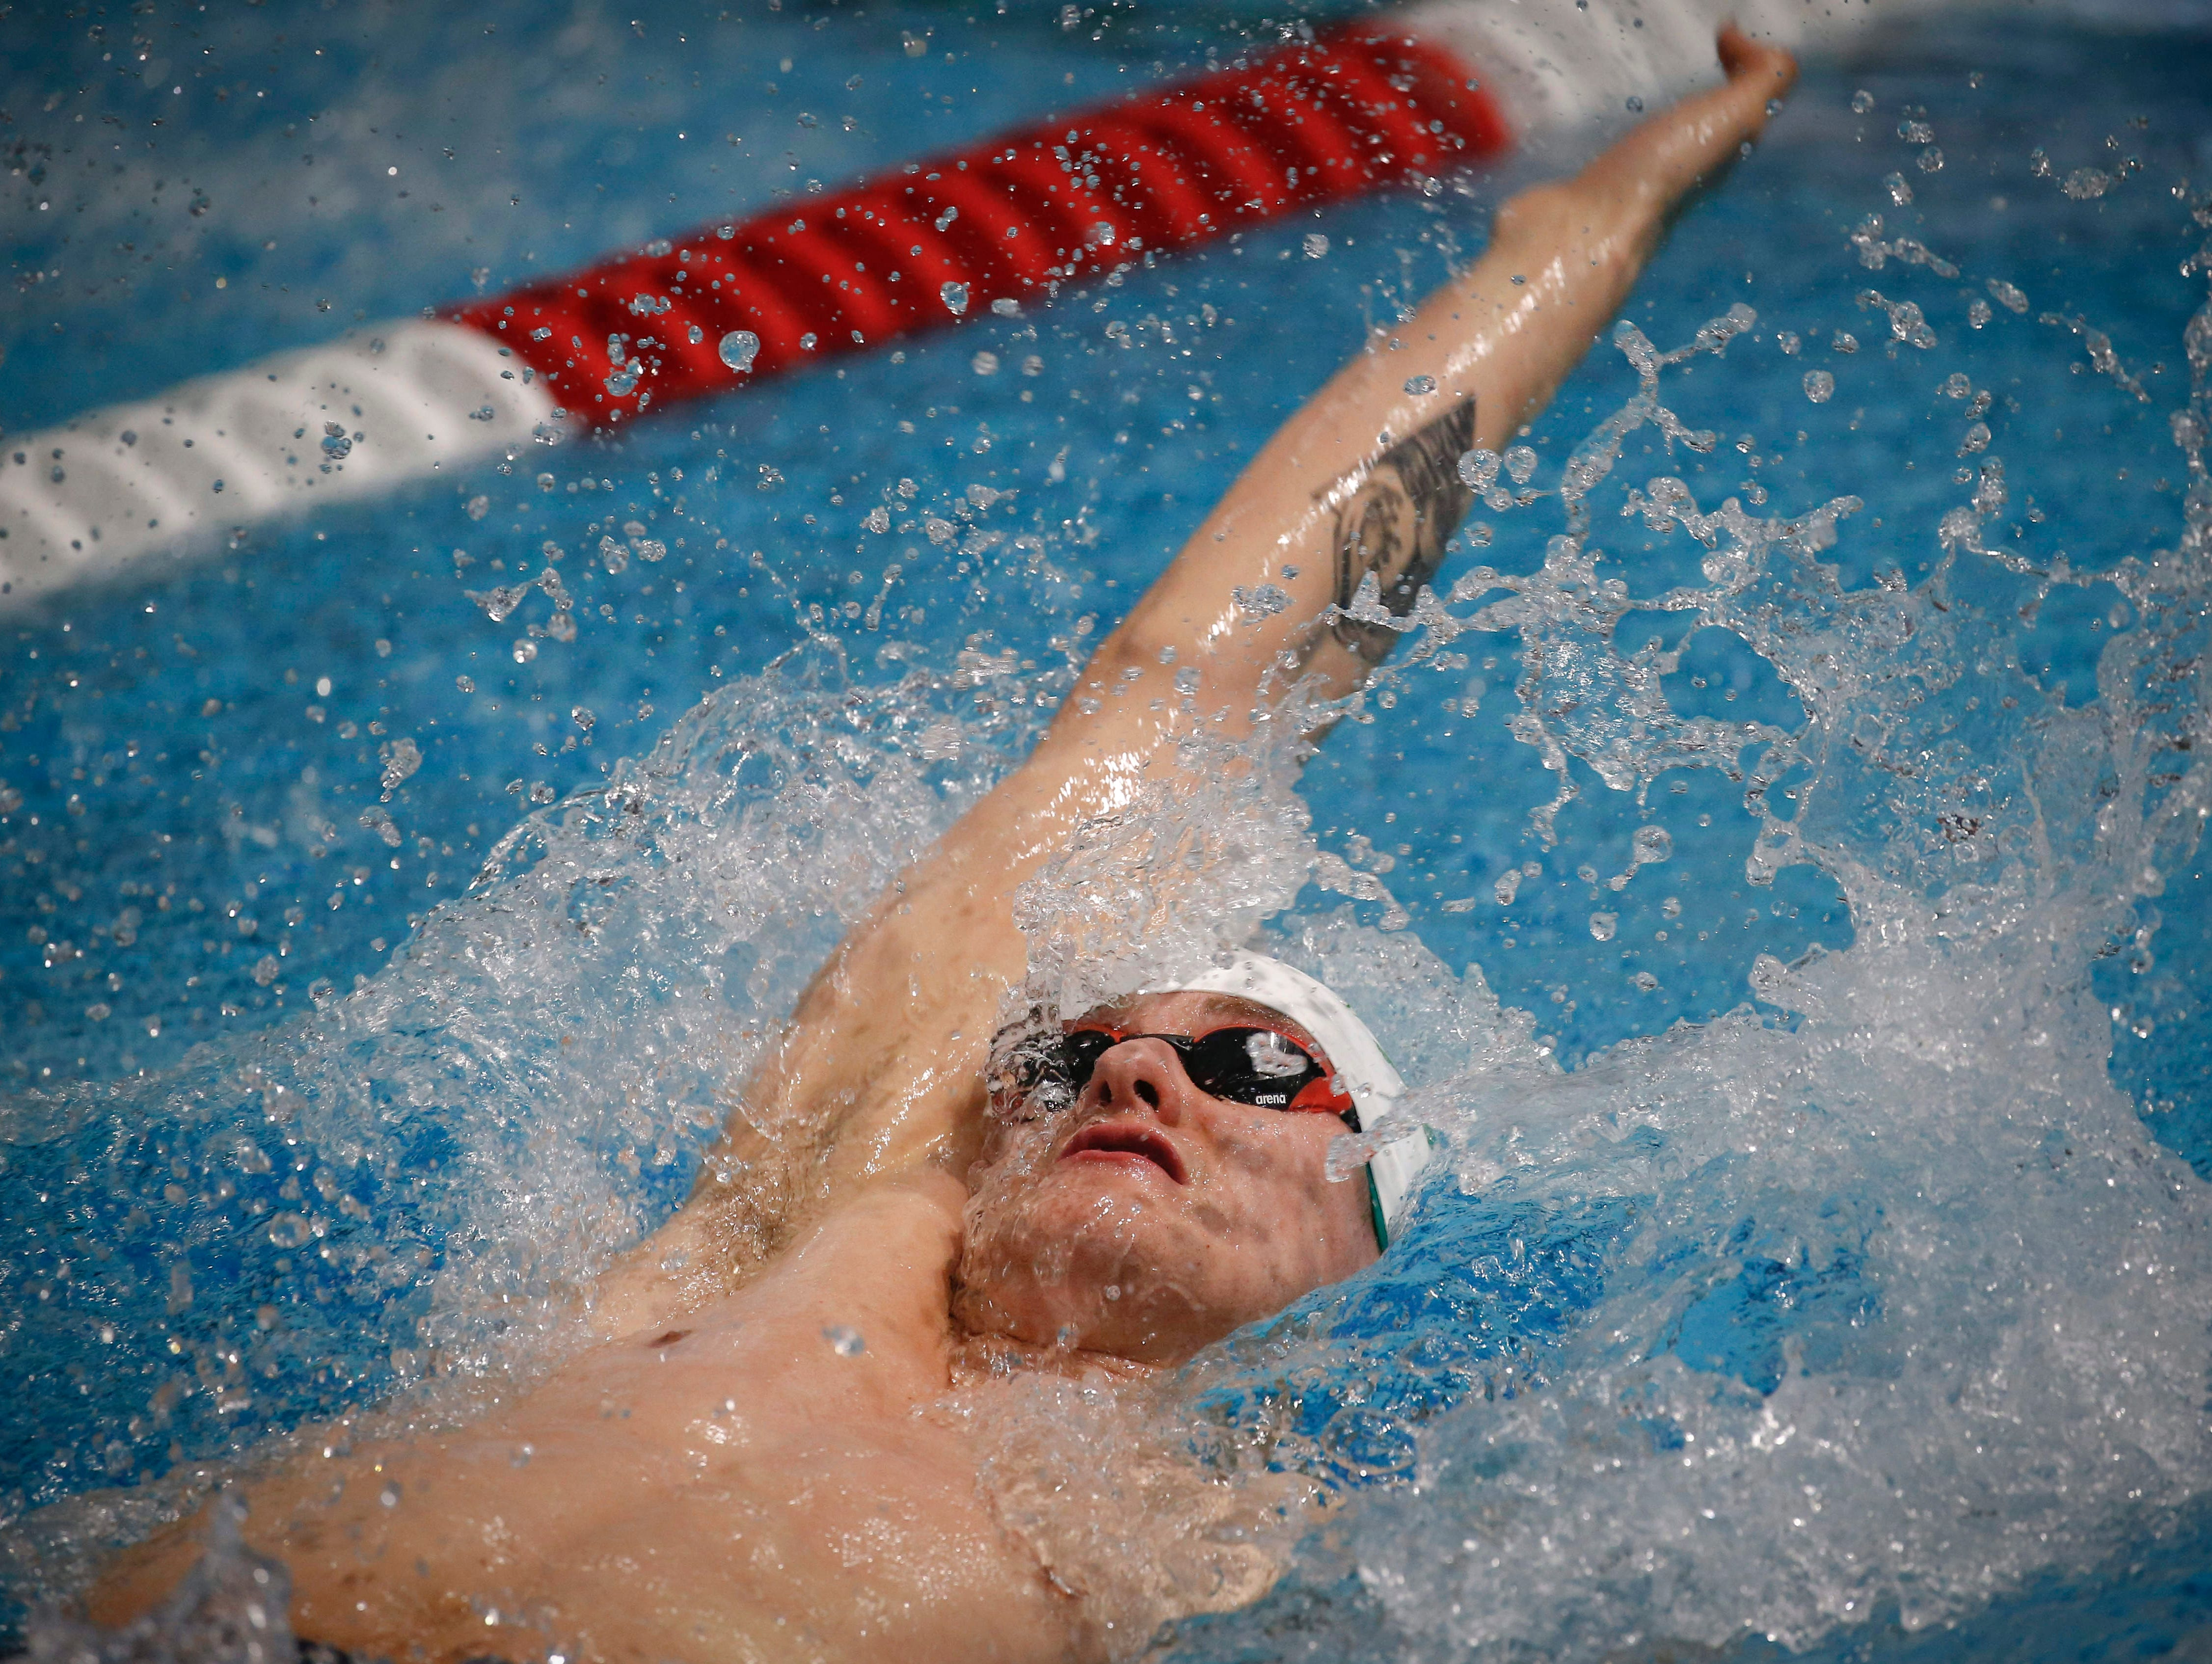 Noah Wasyliw of Winnipeg, Manitoba, competes in the 50-meter backstroke during the 2019 TYR Pro Swim Series on Thursday, March 7, 2019, at the downtown YMCA pool in Des Moines.